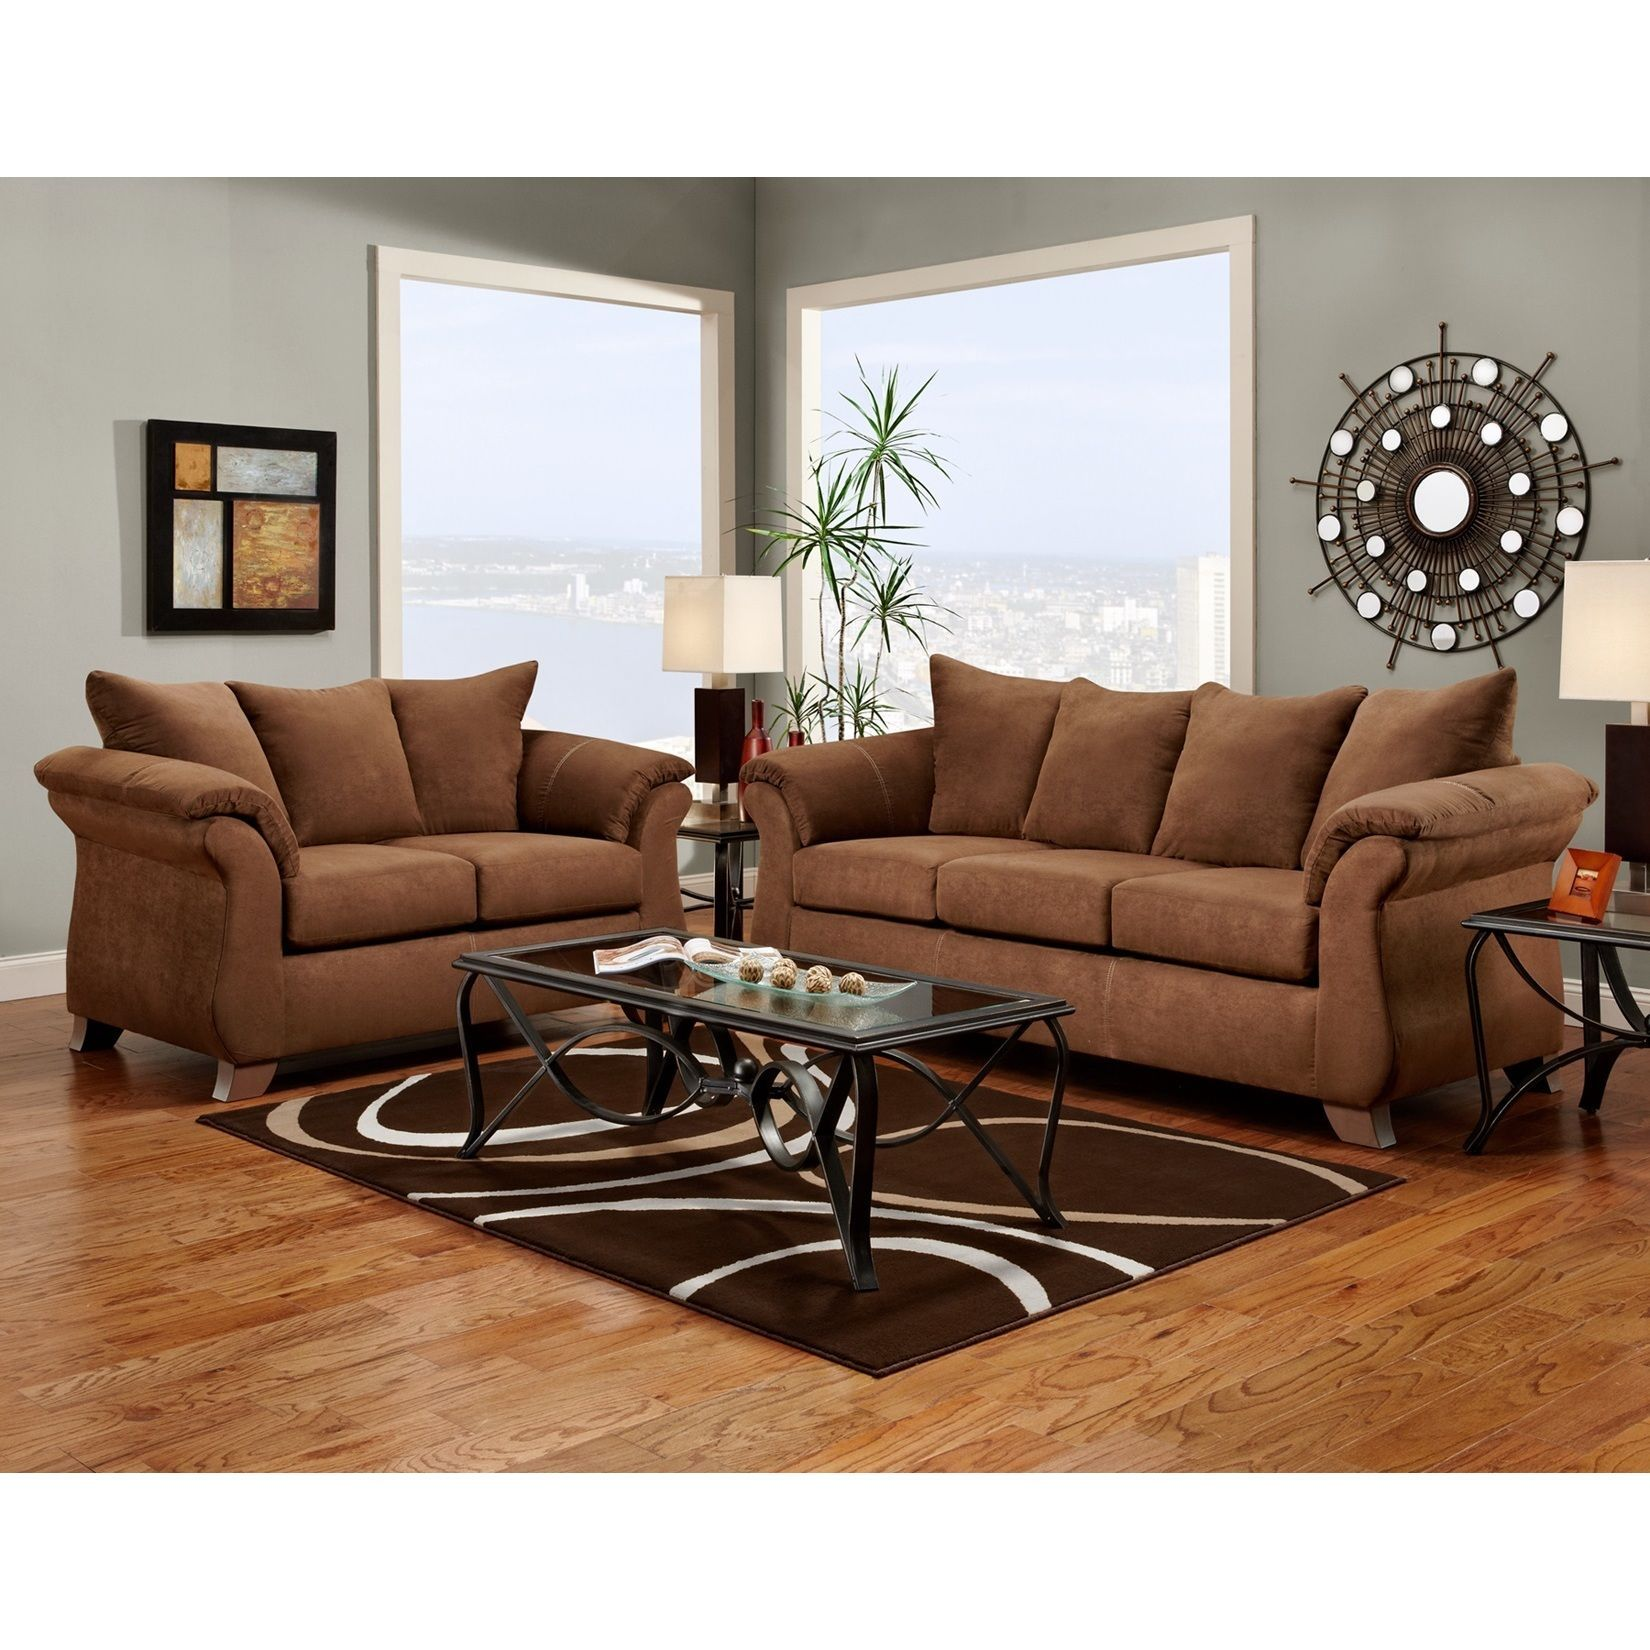 Upgrade your living room with the Aruba